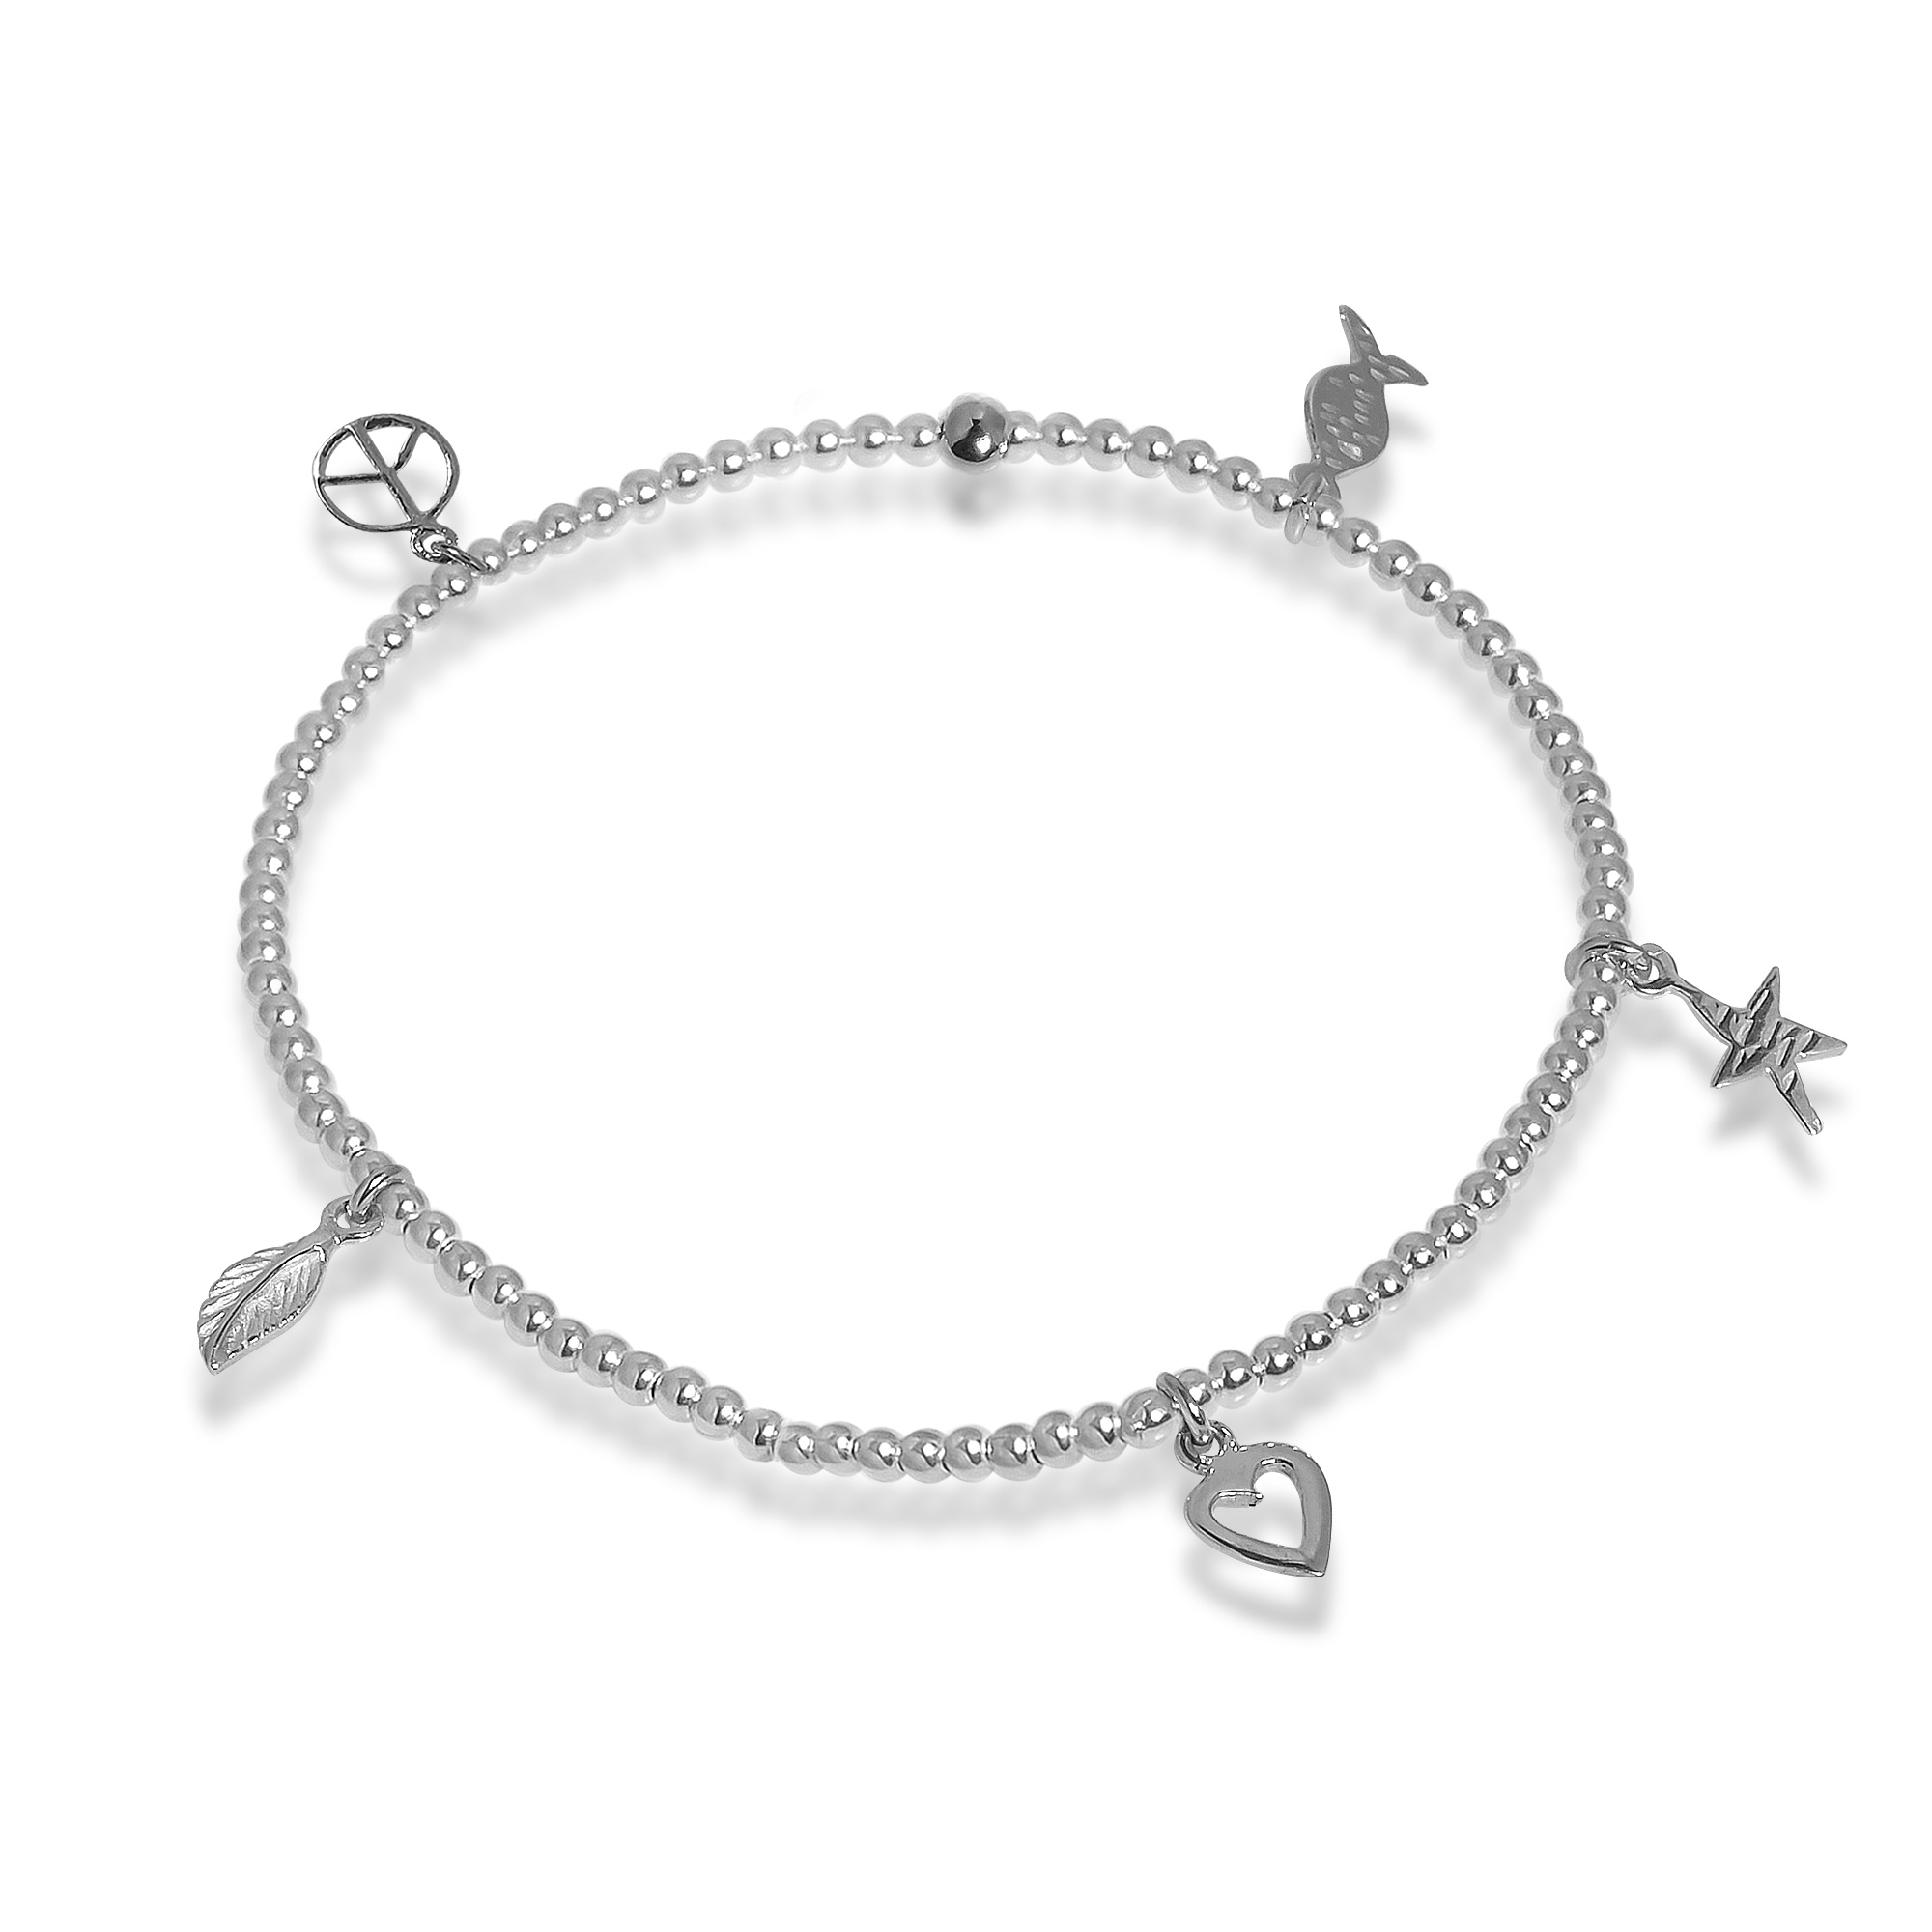 anklets ksvhs anklet pretentious baby jewellery elastic india silver elegant for girl